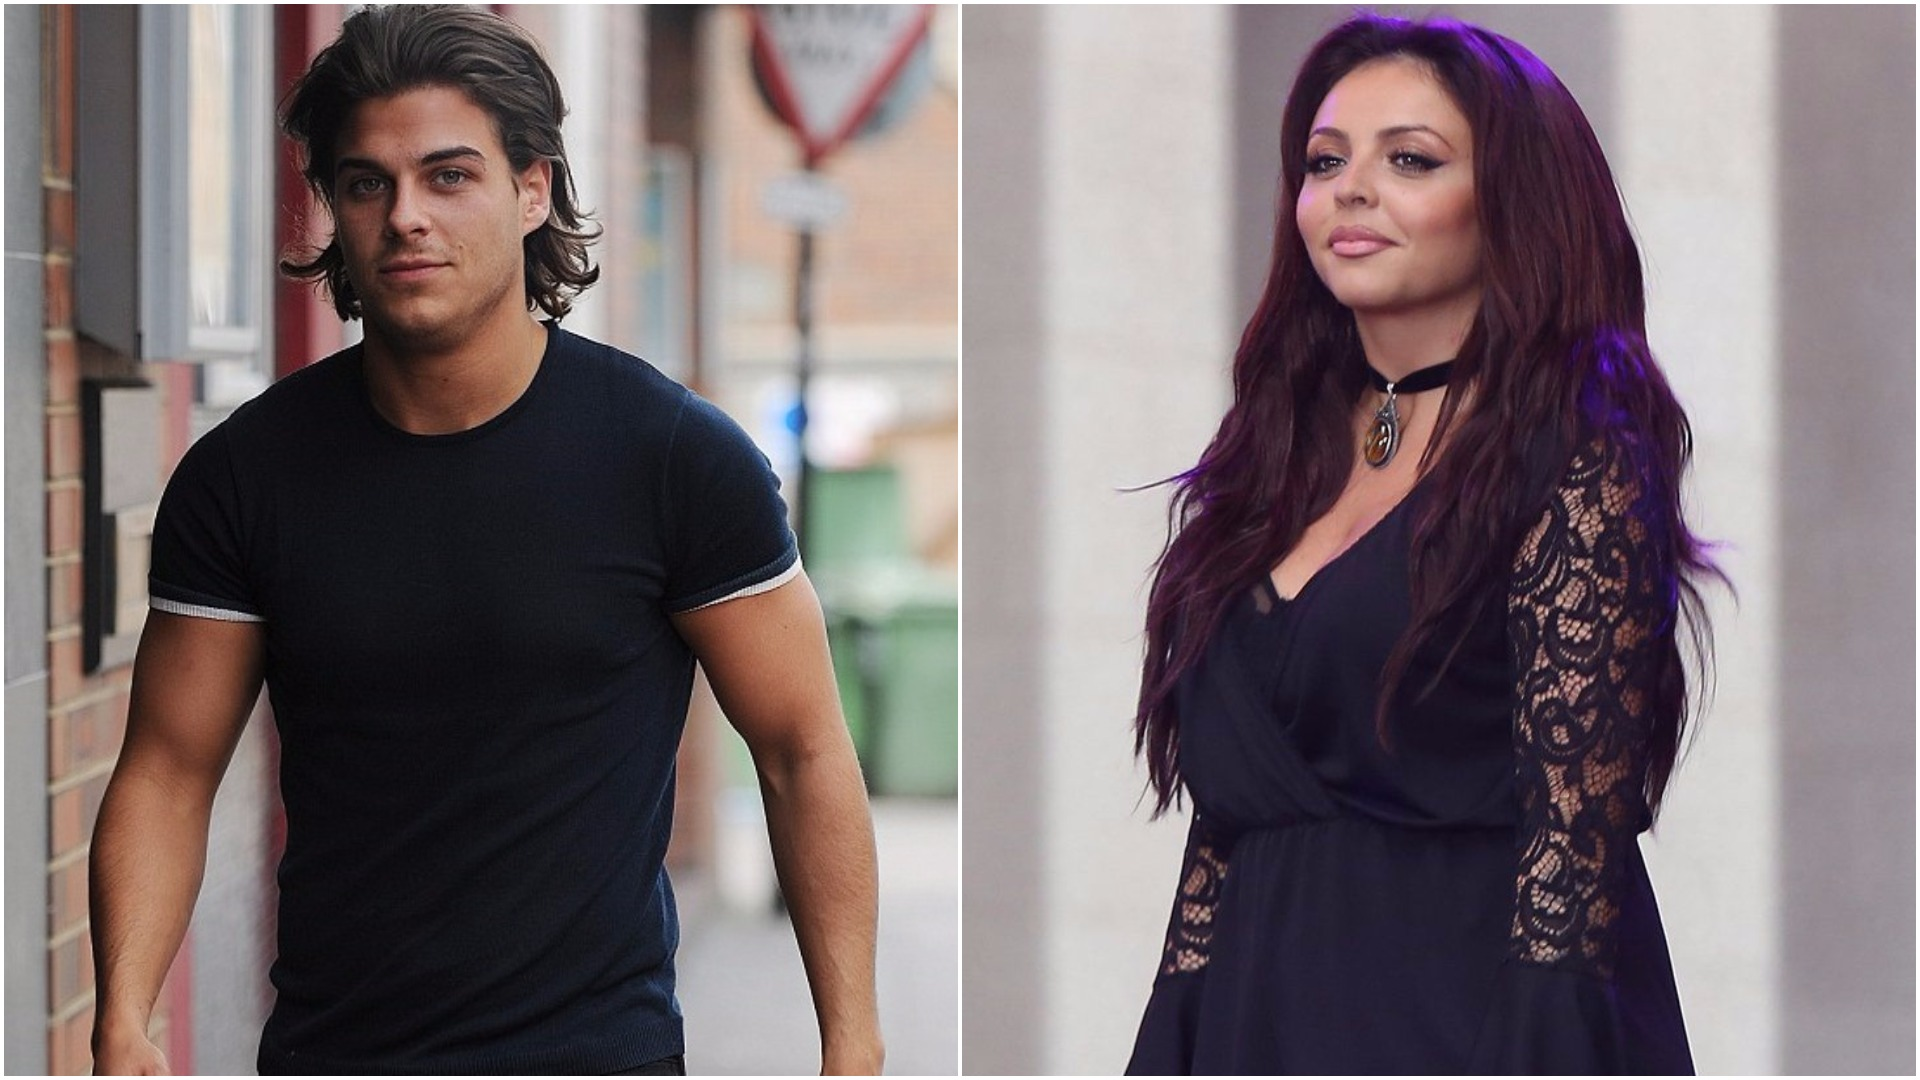 TOWIE dreamboat Chris Clark confirms he's dating Little Mix star Jesy Nelson